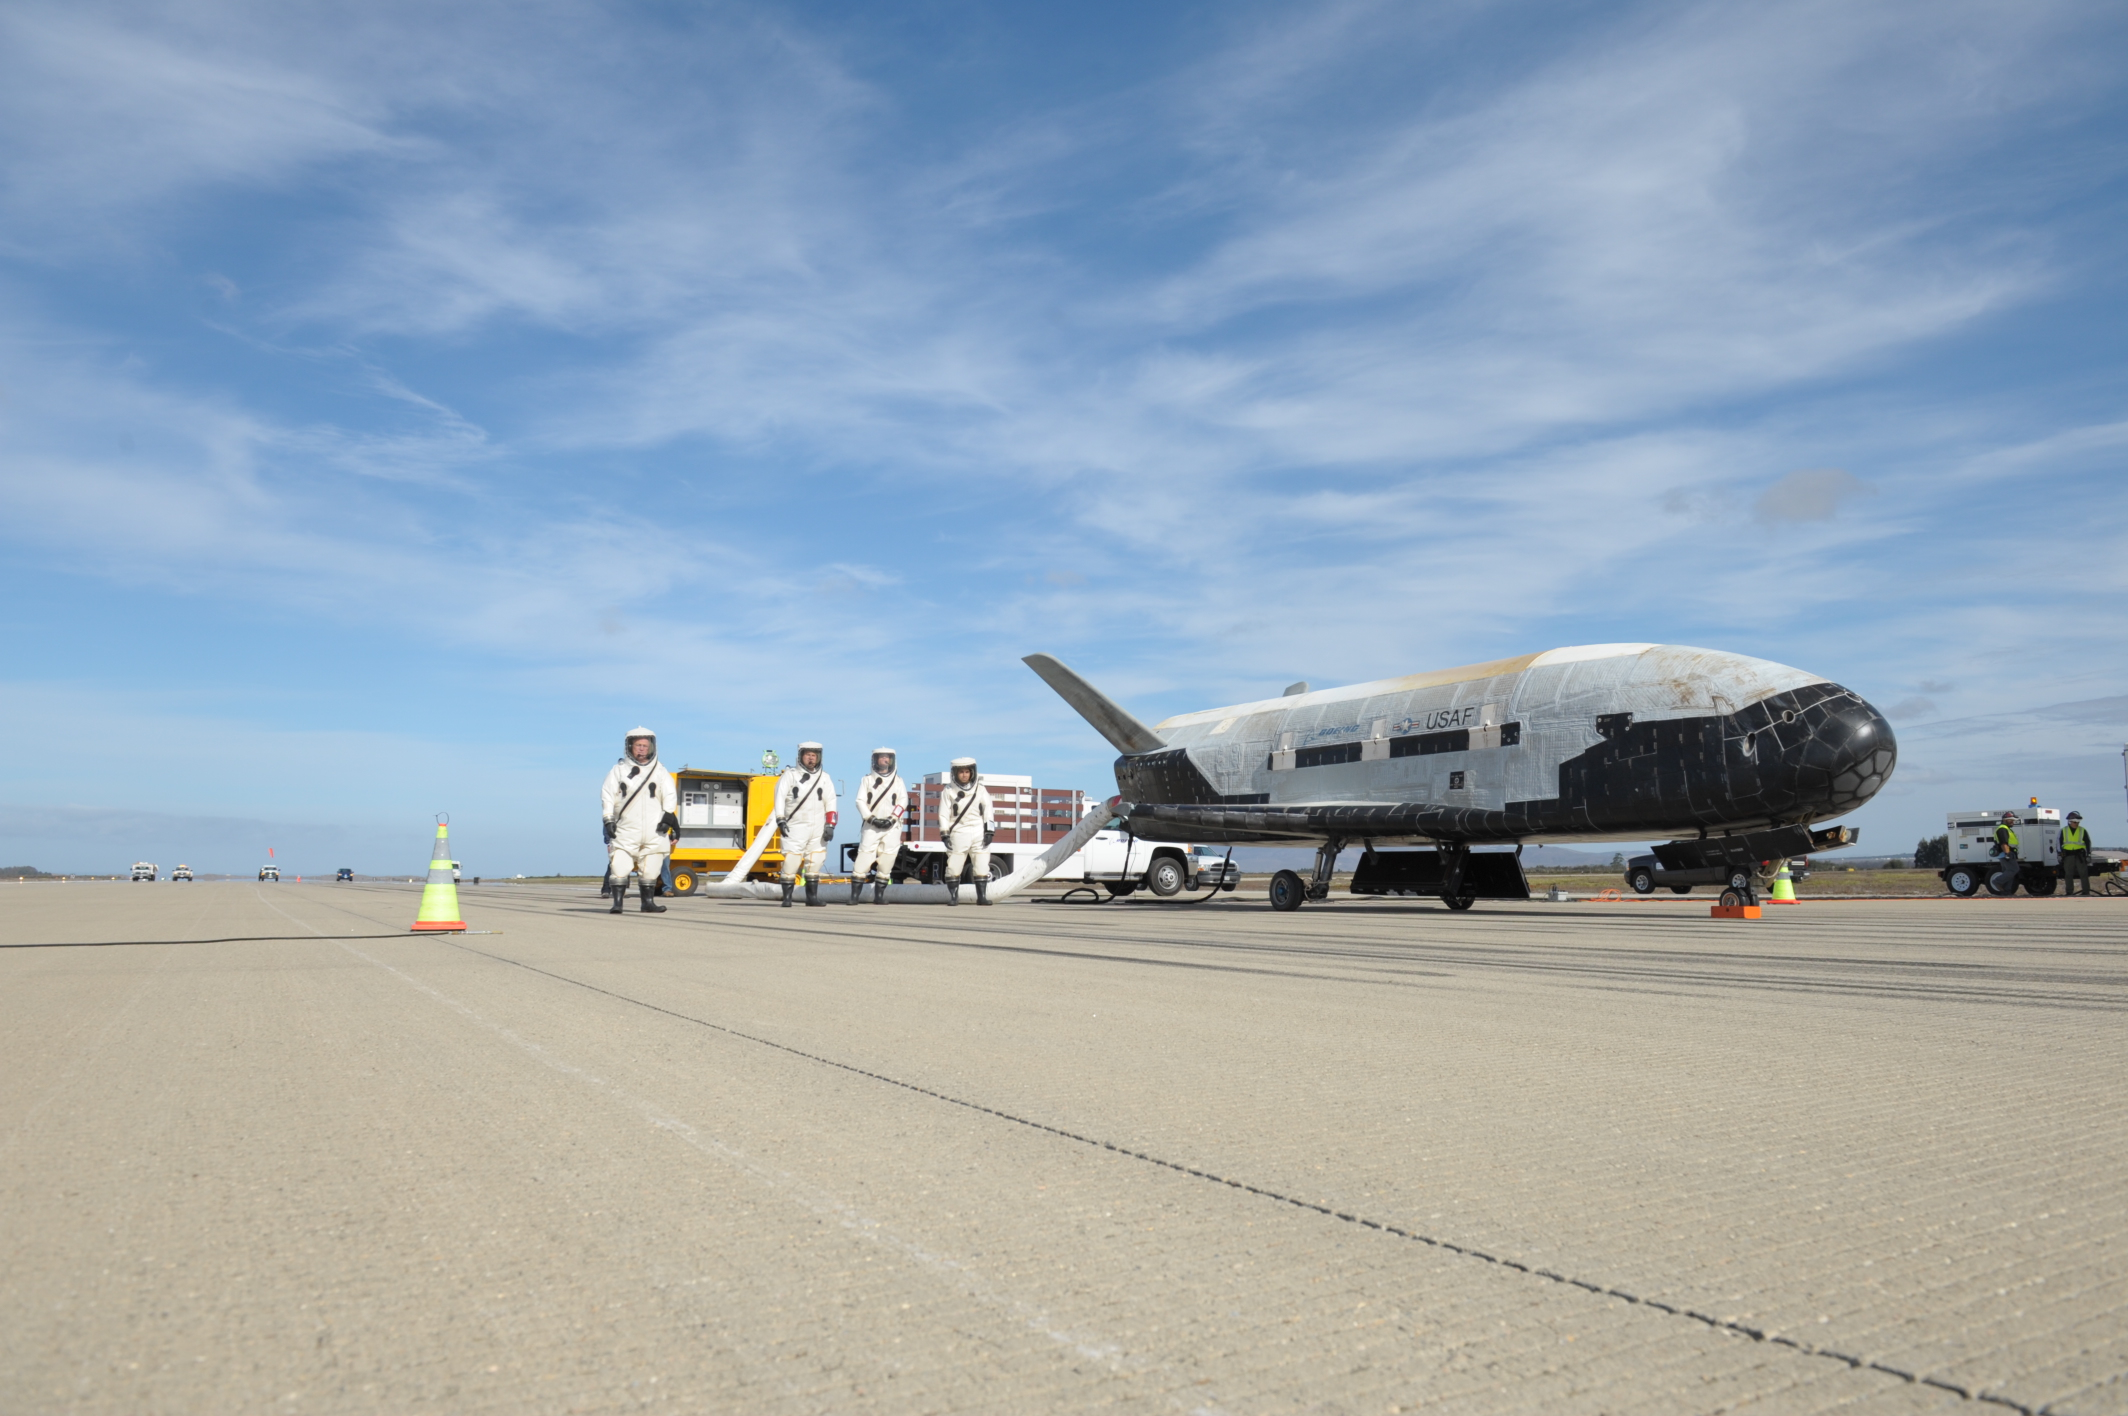 X-37B Landing on Oct. 17, 2014: Ground Crew